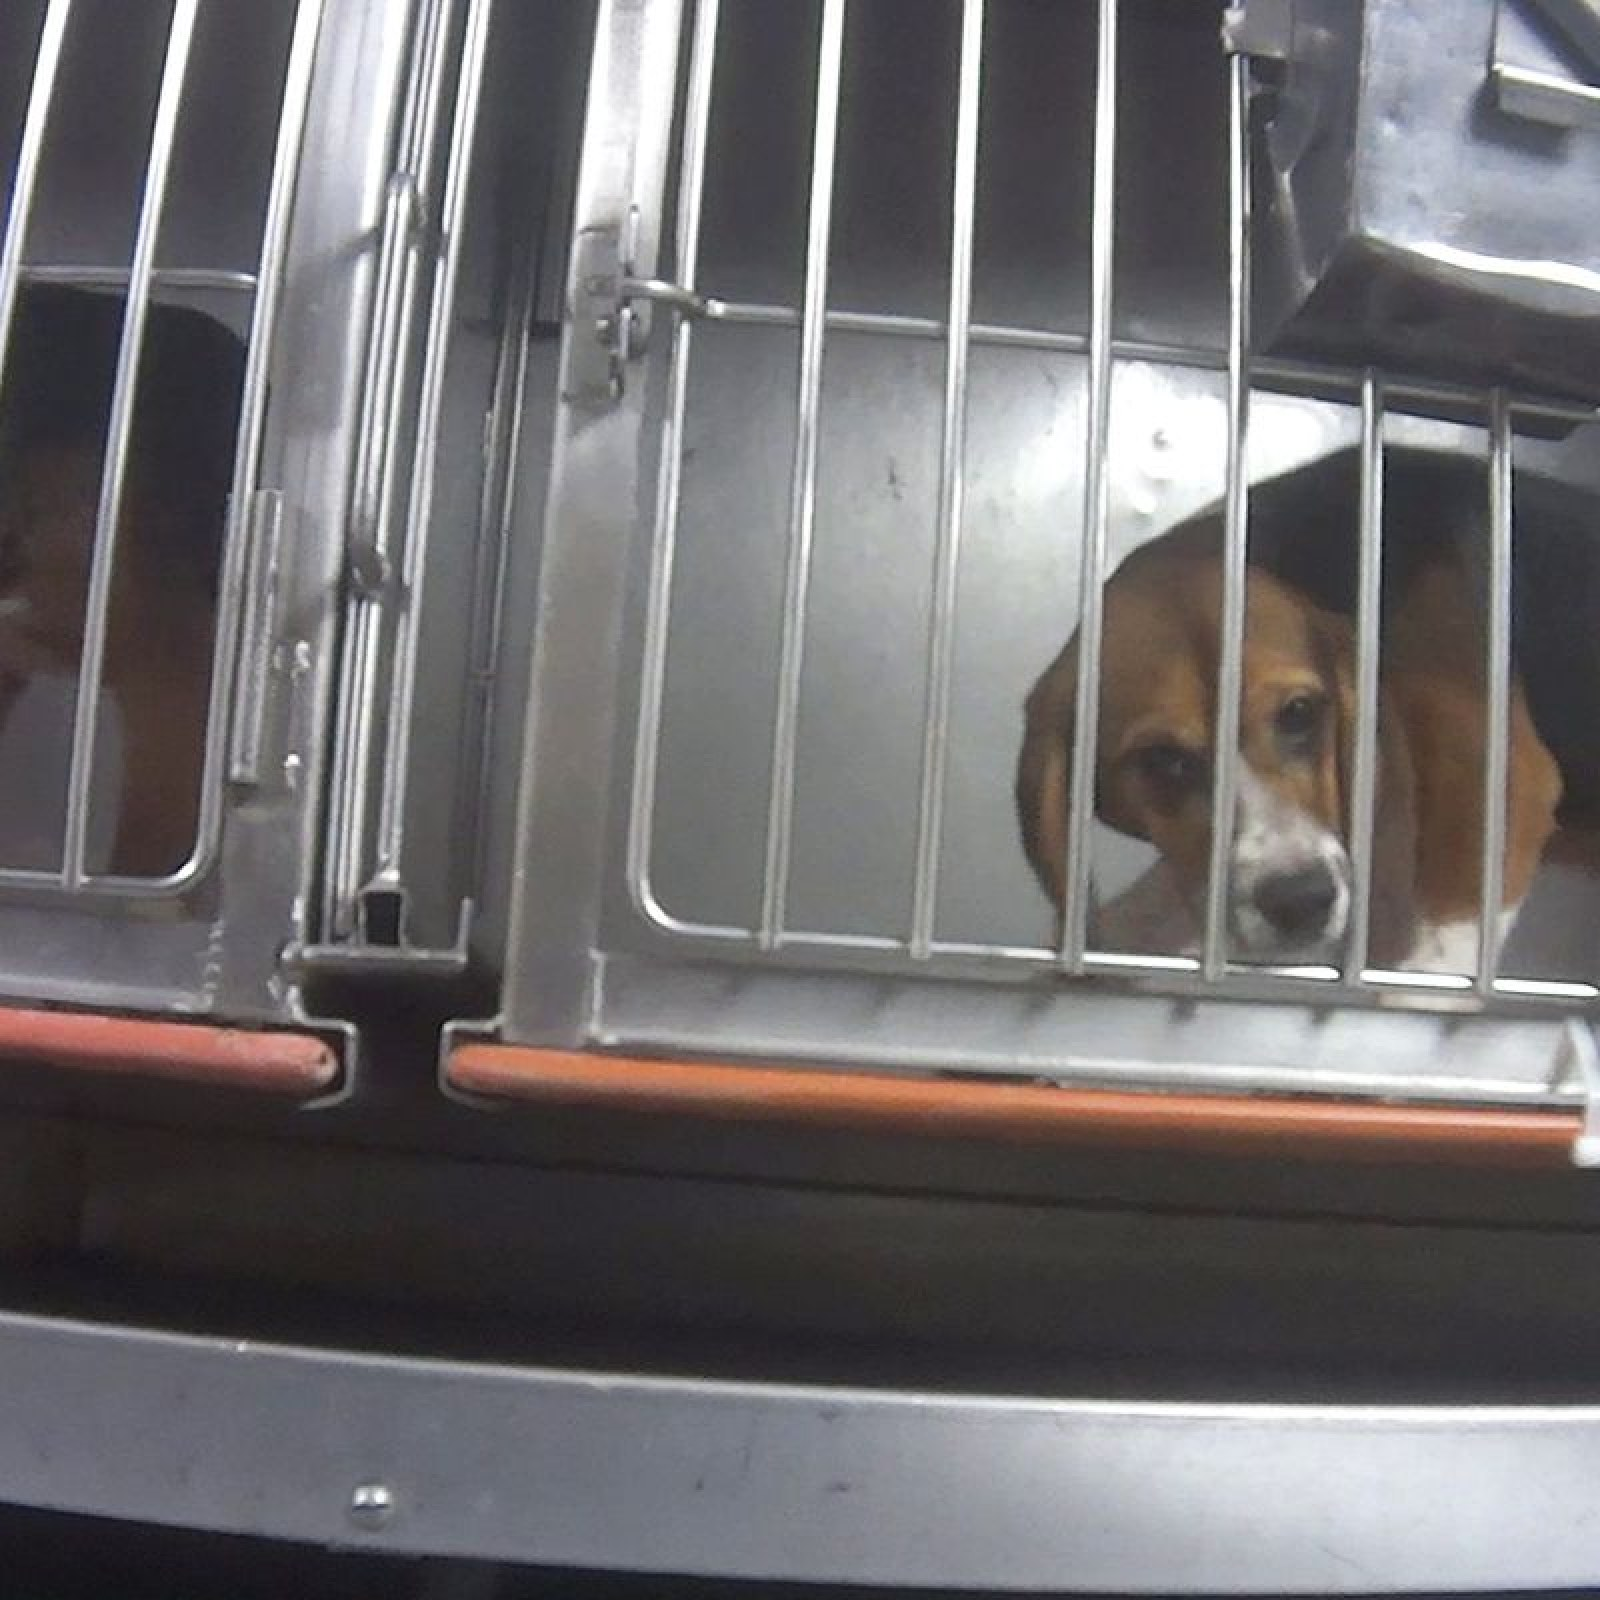 Humane Society Petition Goes Viral After Video Shows Beagles 'Force